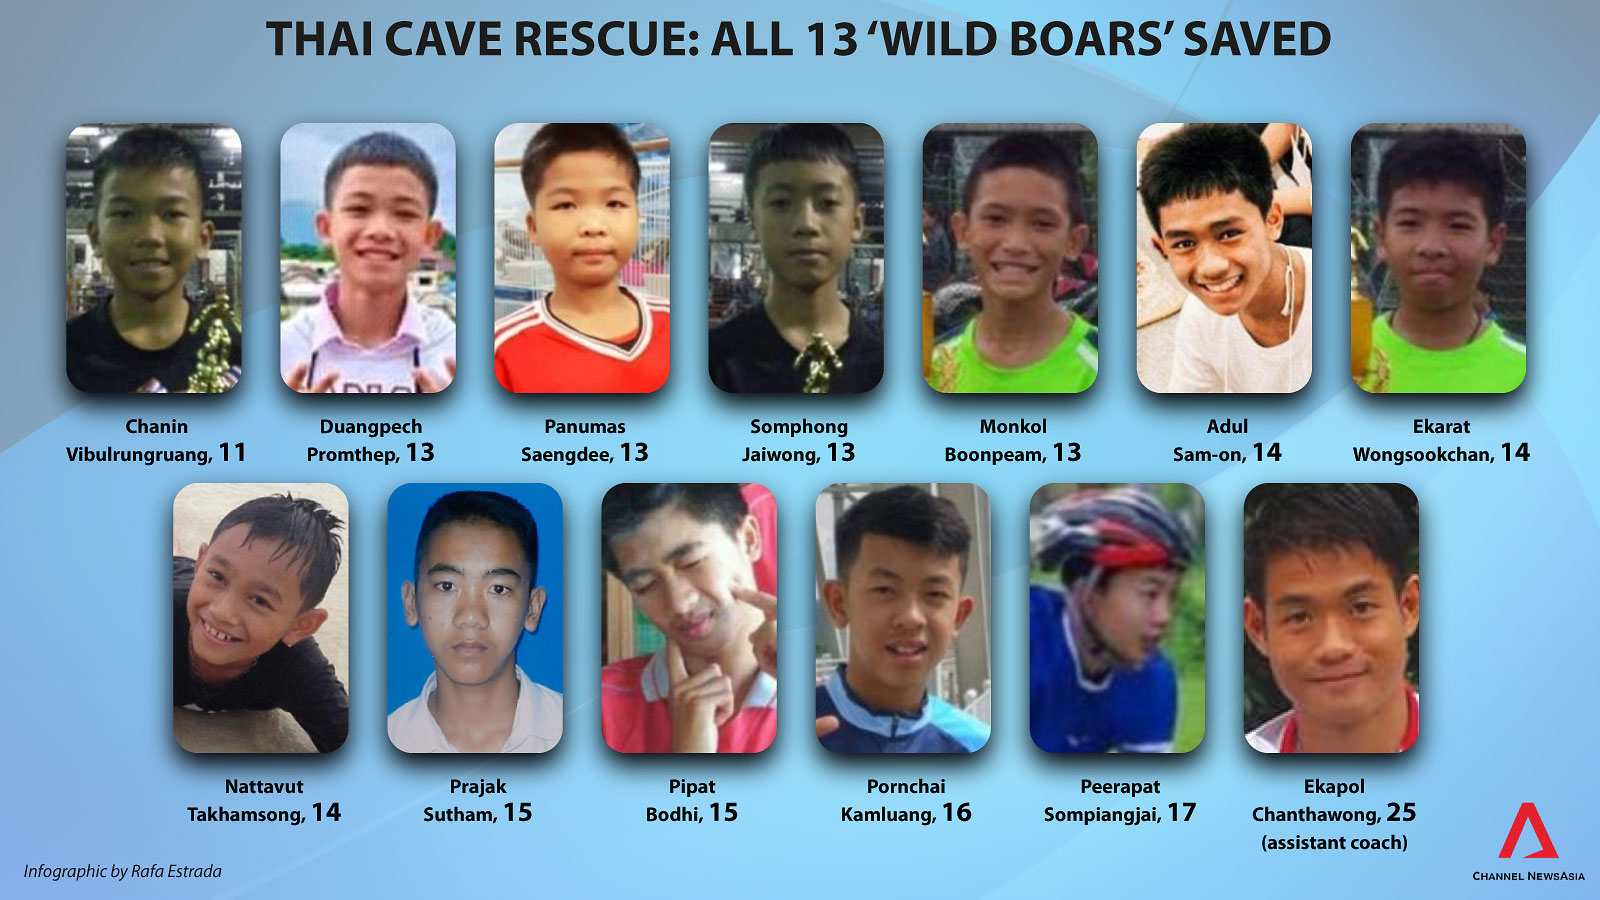 thai-cave-rescue-all-13-wild-boars-saved.jpg